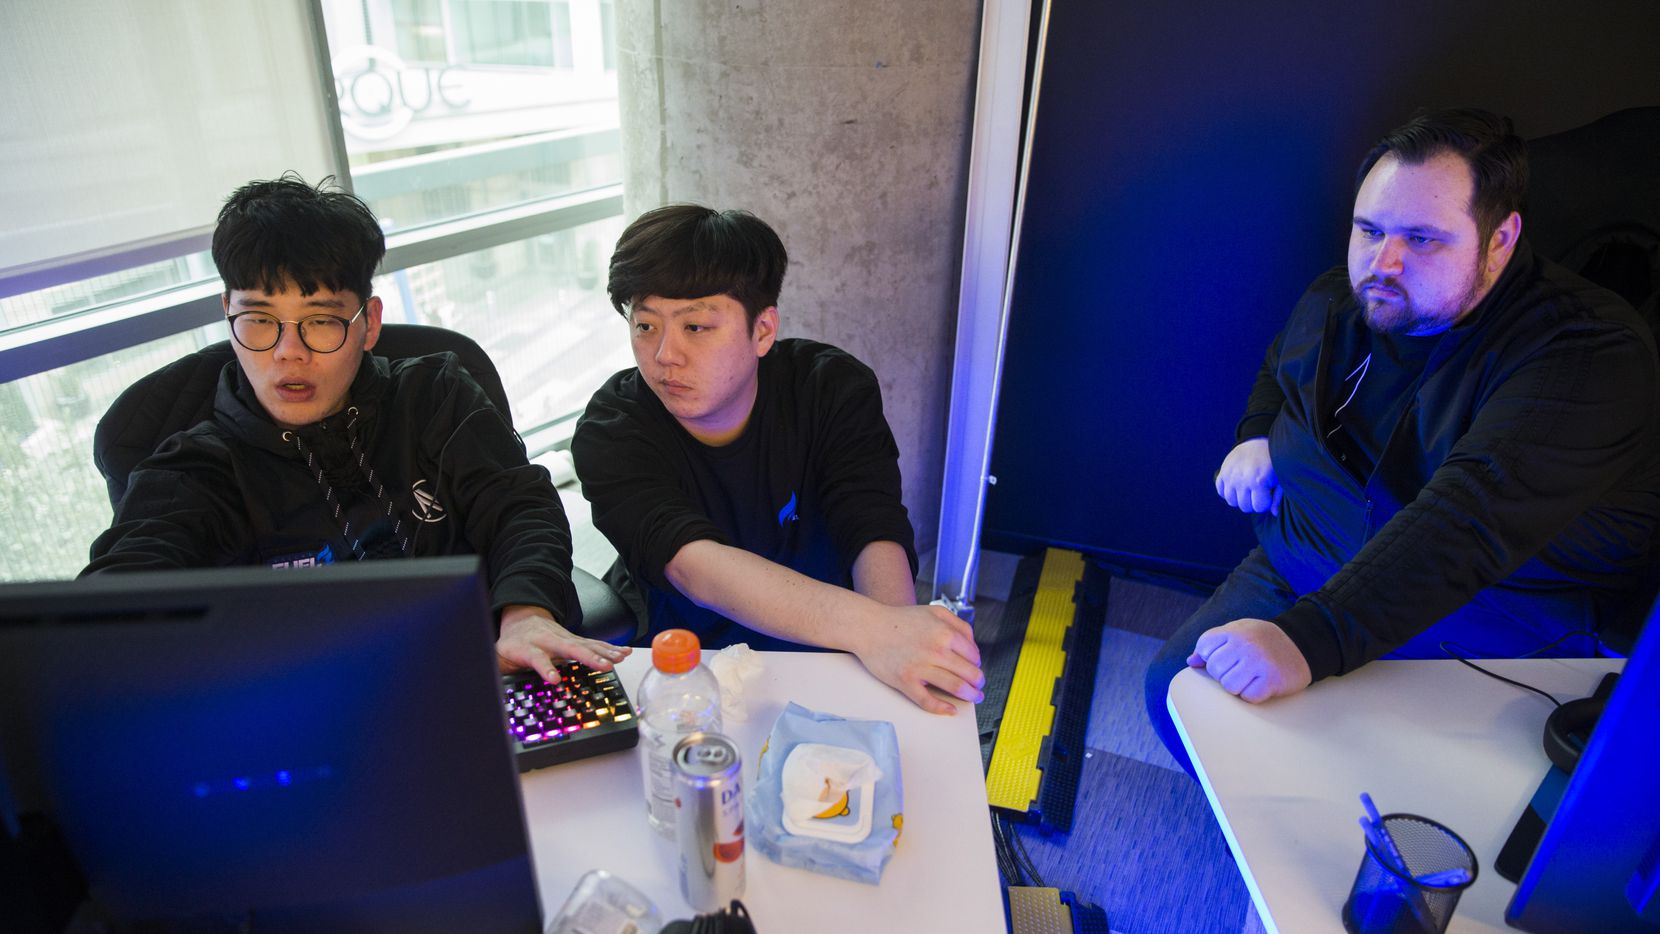 """Dallas Fuel Assitant Coach Kim """"Yong"""" Yong-Jin (left), Assistant Coach Dang """"Vol'Jin"""" Min-Gyu, and Head Coach Aaron """"Aero"""" Atkins (right) practice on Wednesday, January 29, 2020 at Envy Gaming headquarters in Dallas."""